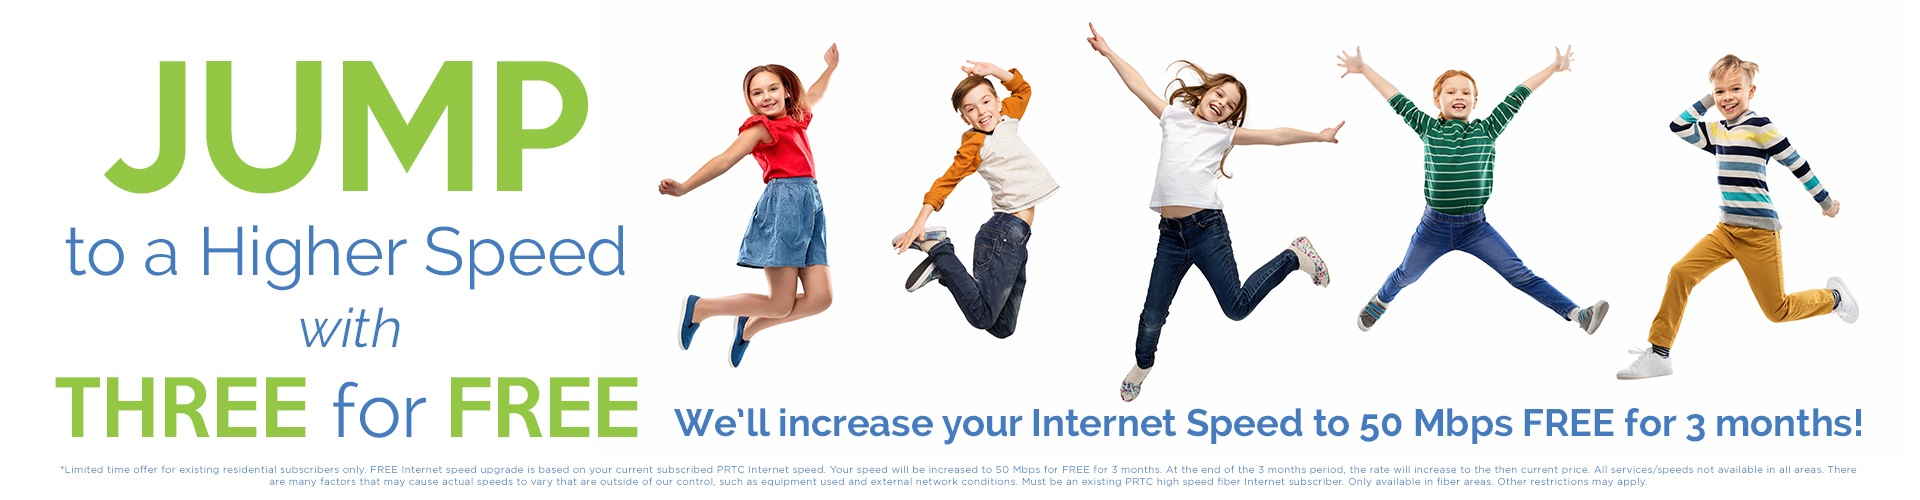 Faster Internet Speed With PRTC